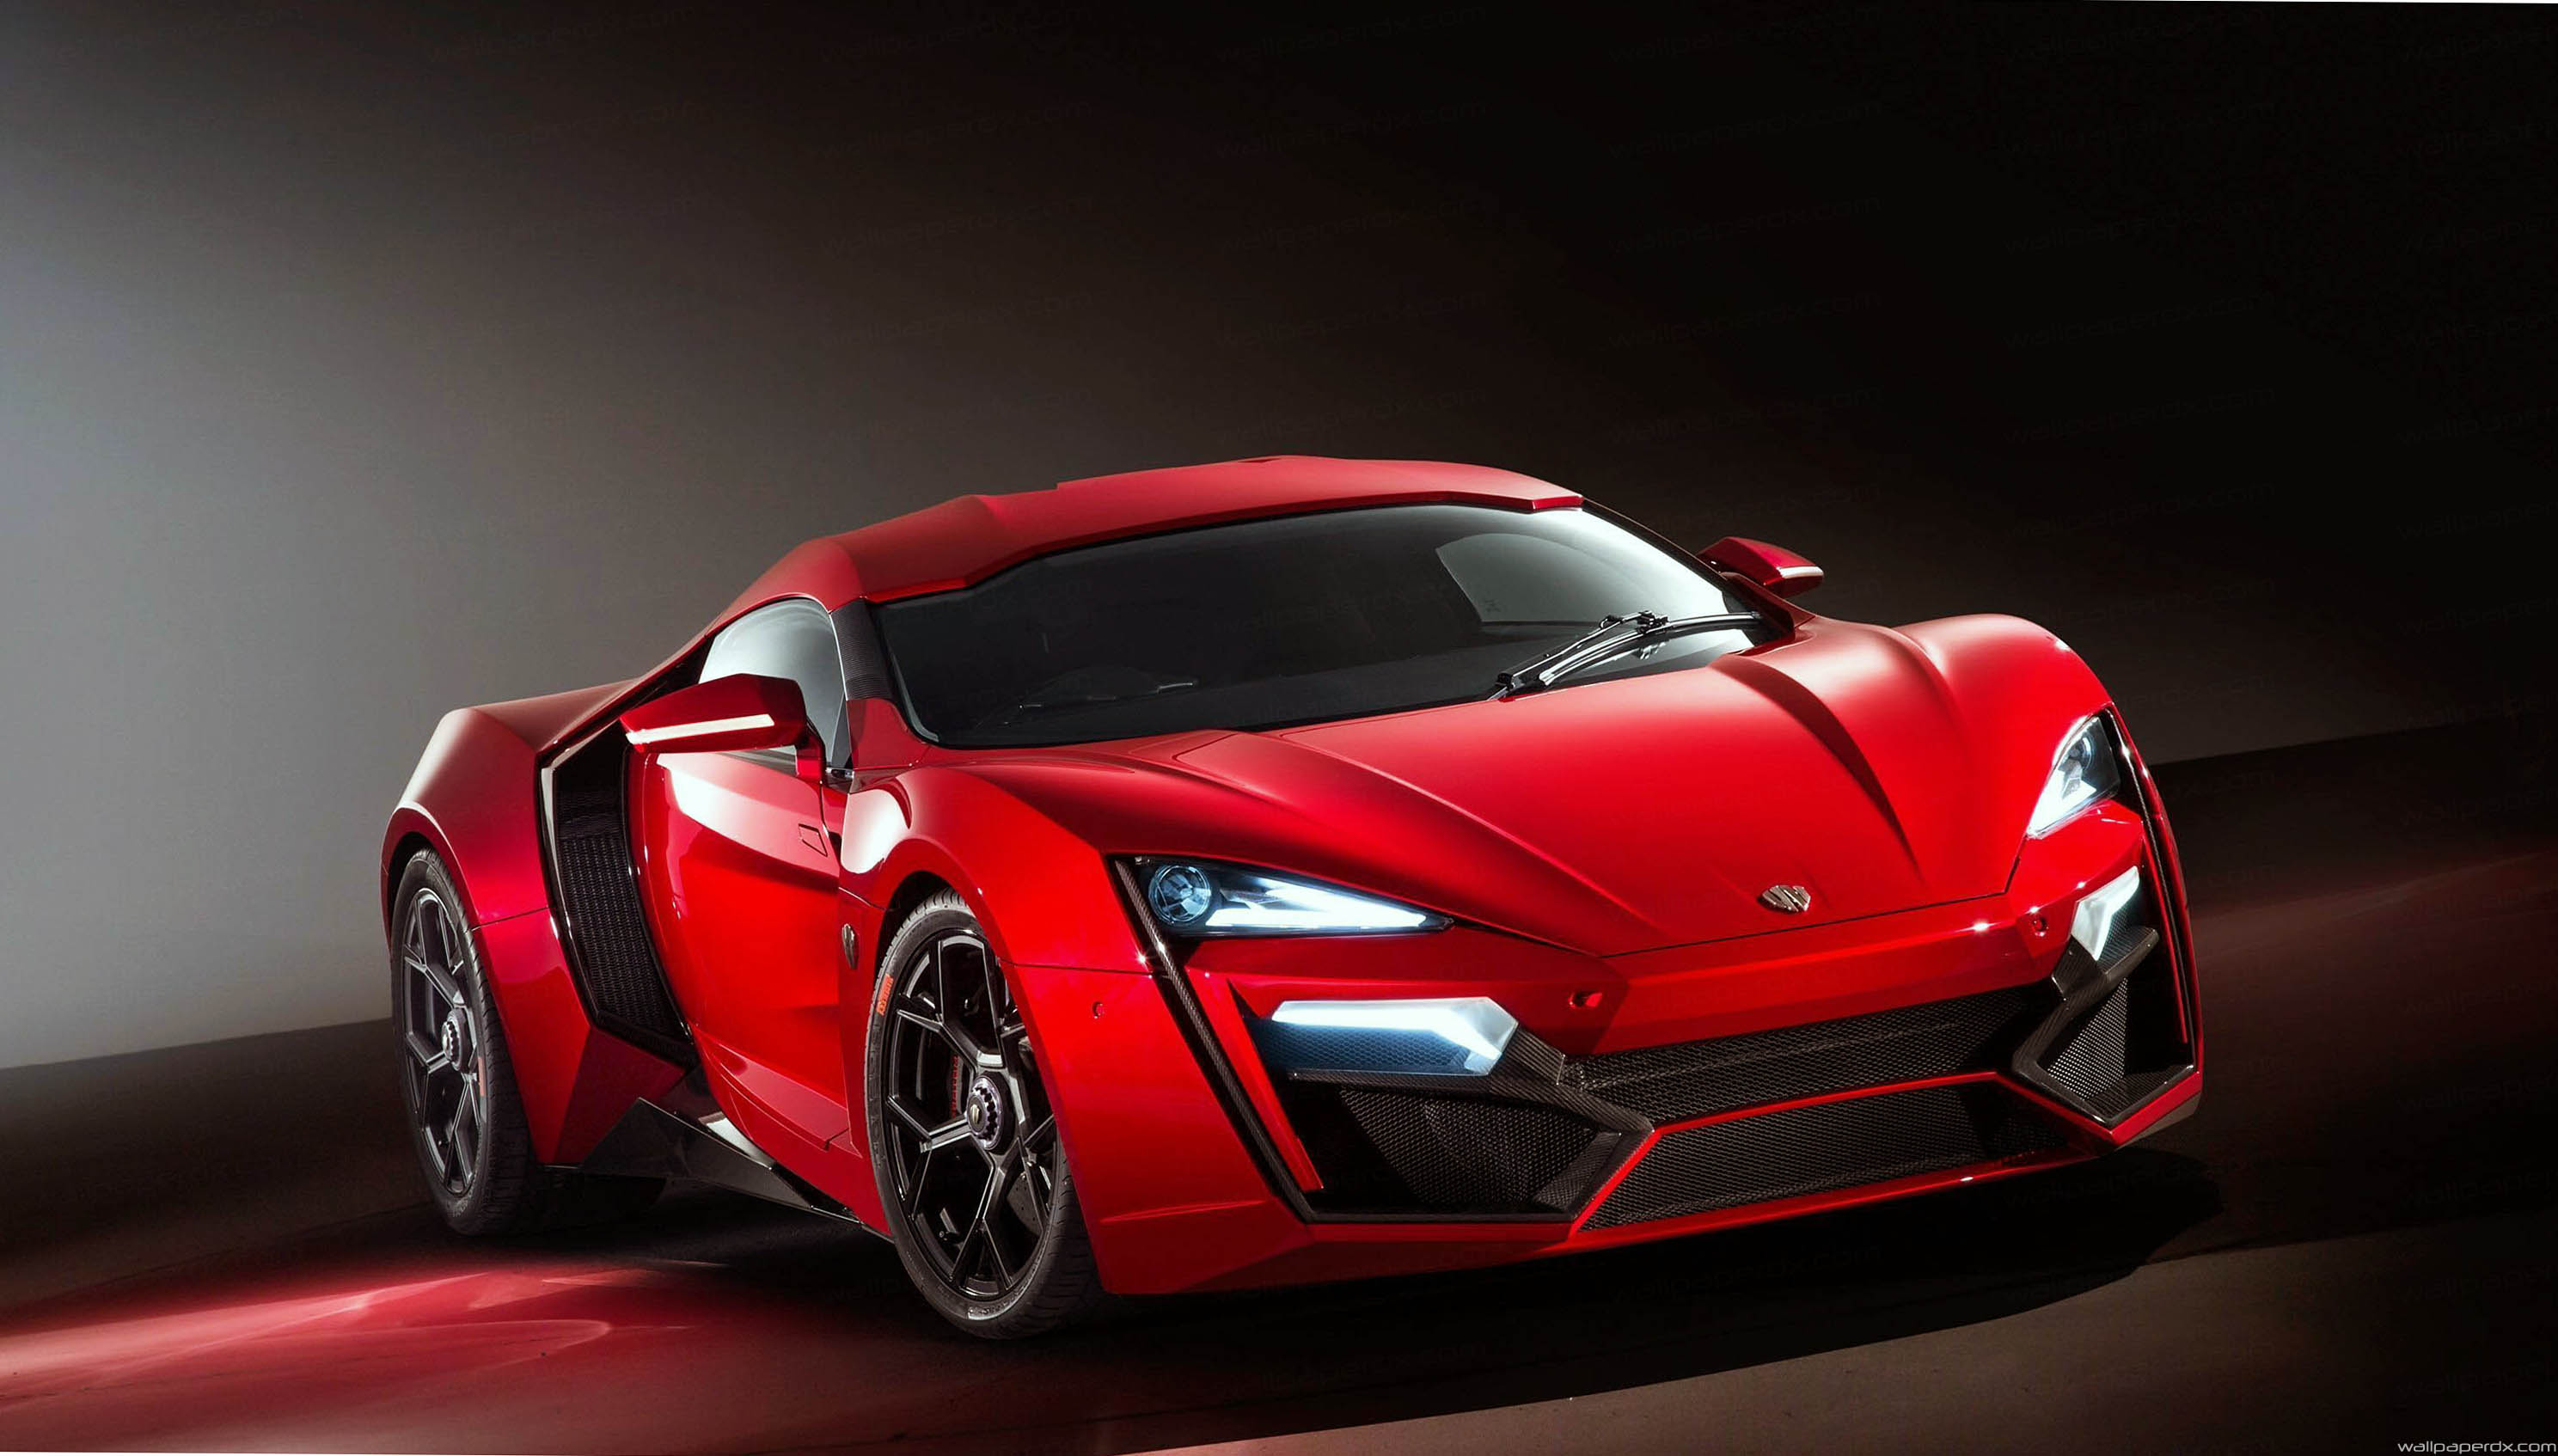 Free Download Lykan Hypersport Hypercar Full Hd Wallpaperdxcom 2976x1694 For Your Desktop Mobile Tablet Explore 90 Hypercar Wallpapers Hypercar Wallpapers